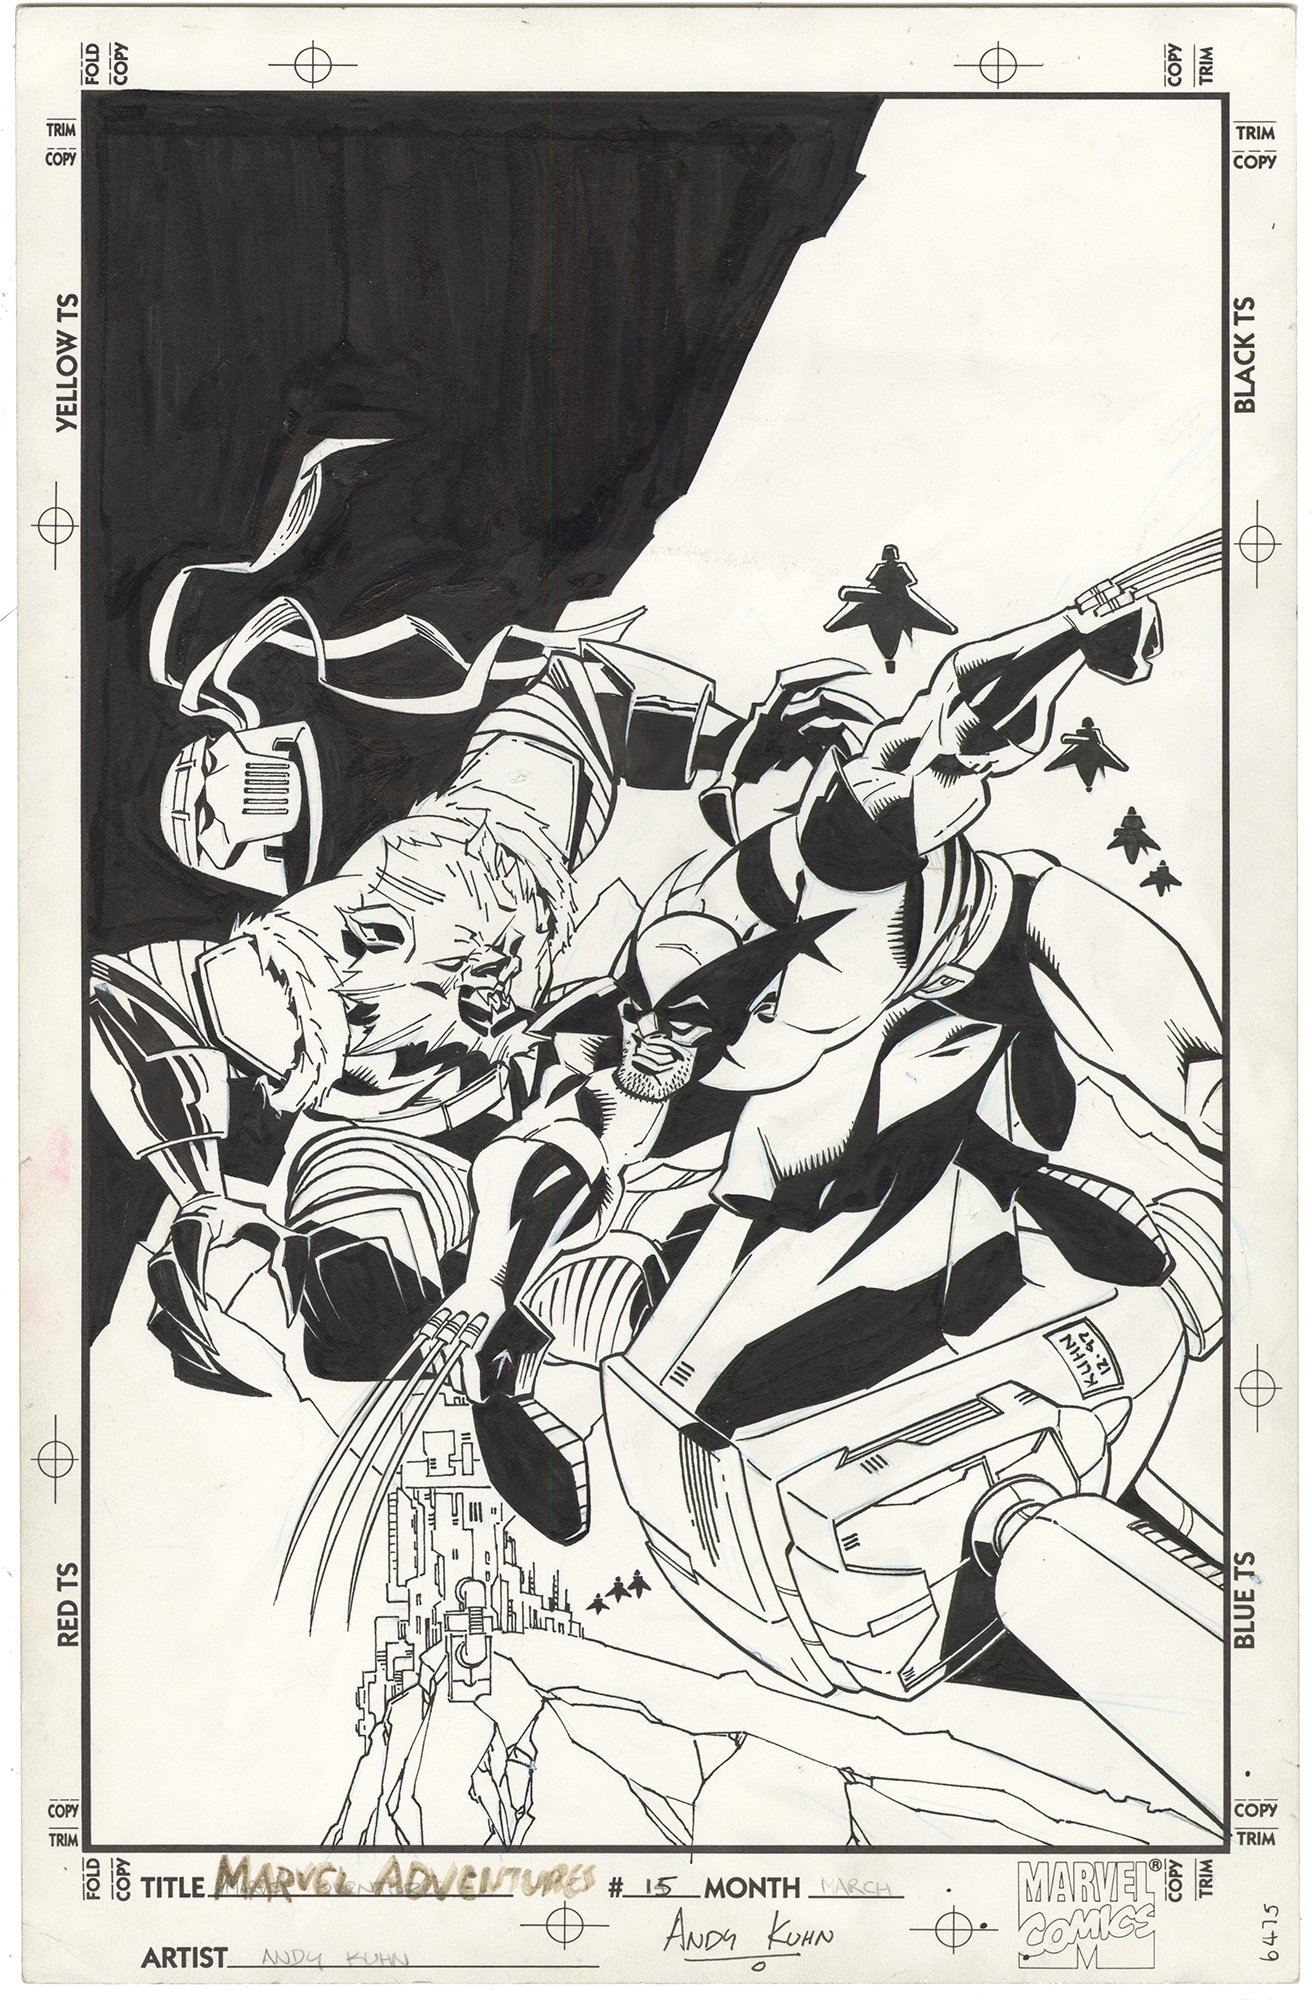 Marvel Adventures #15 Cover